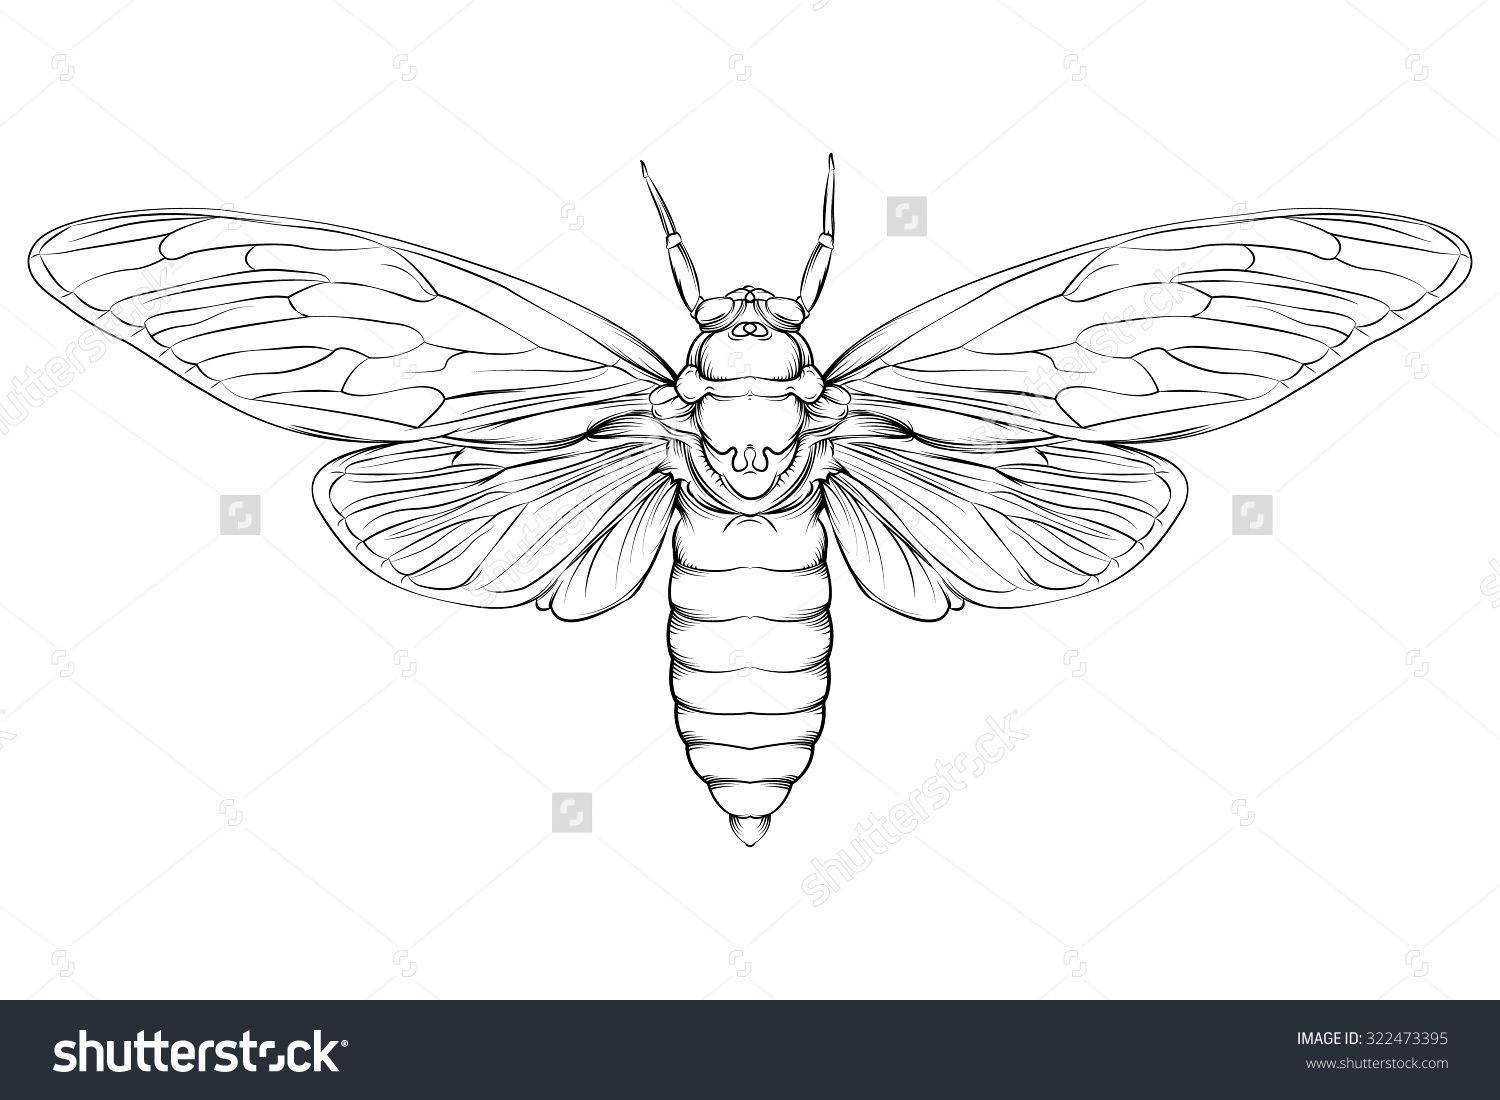 vector drawing of a large moth line drawing easy to edit